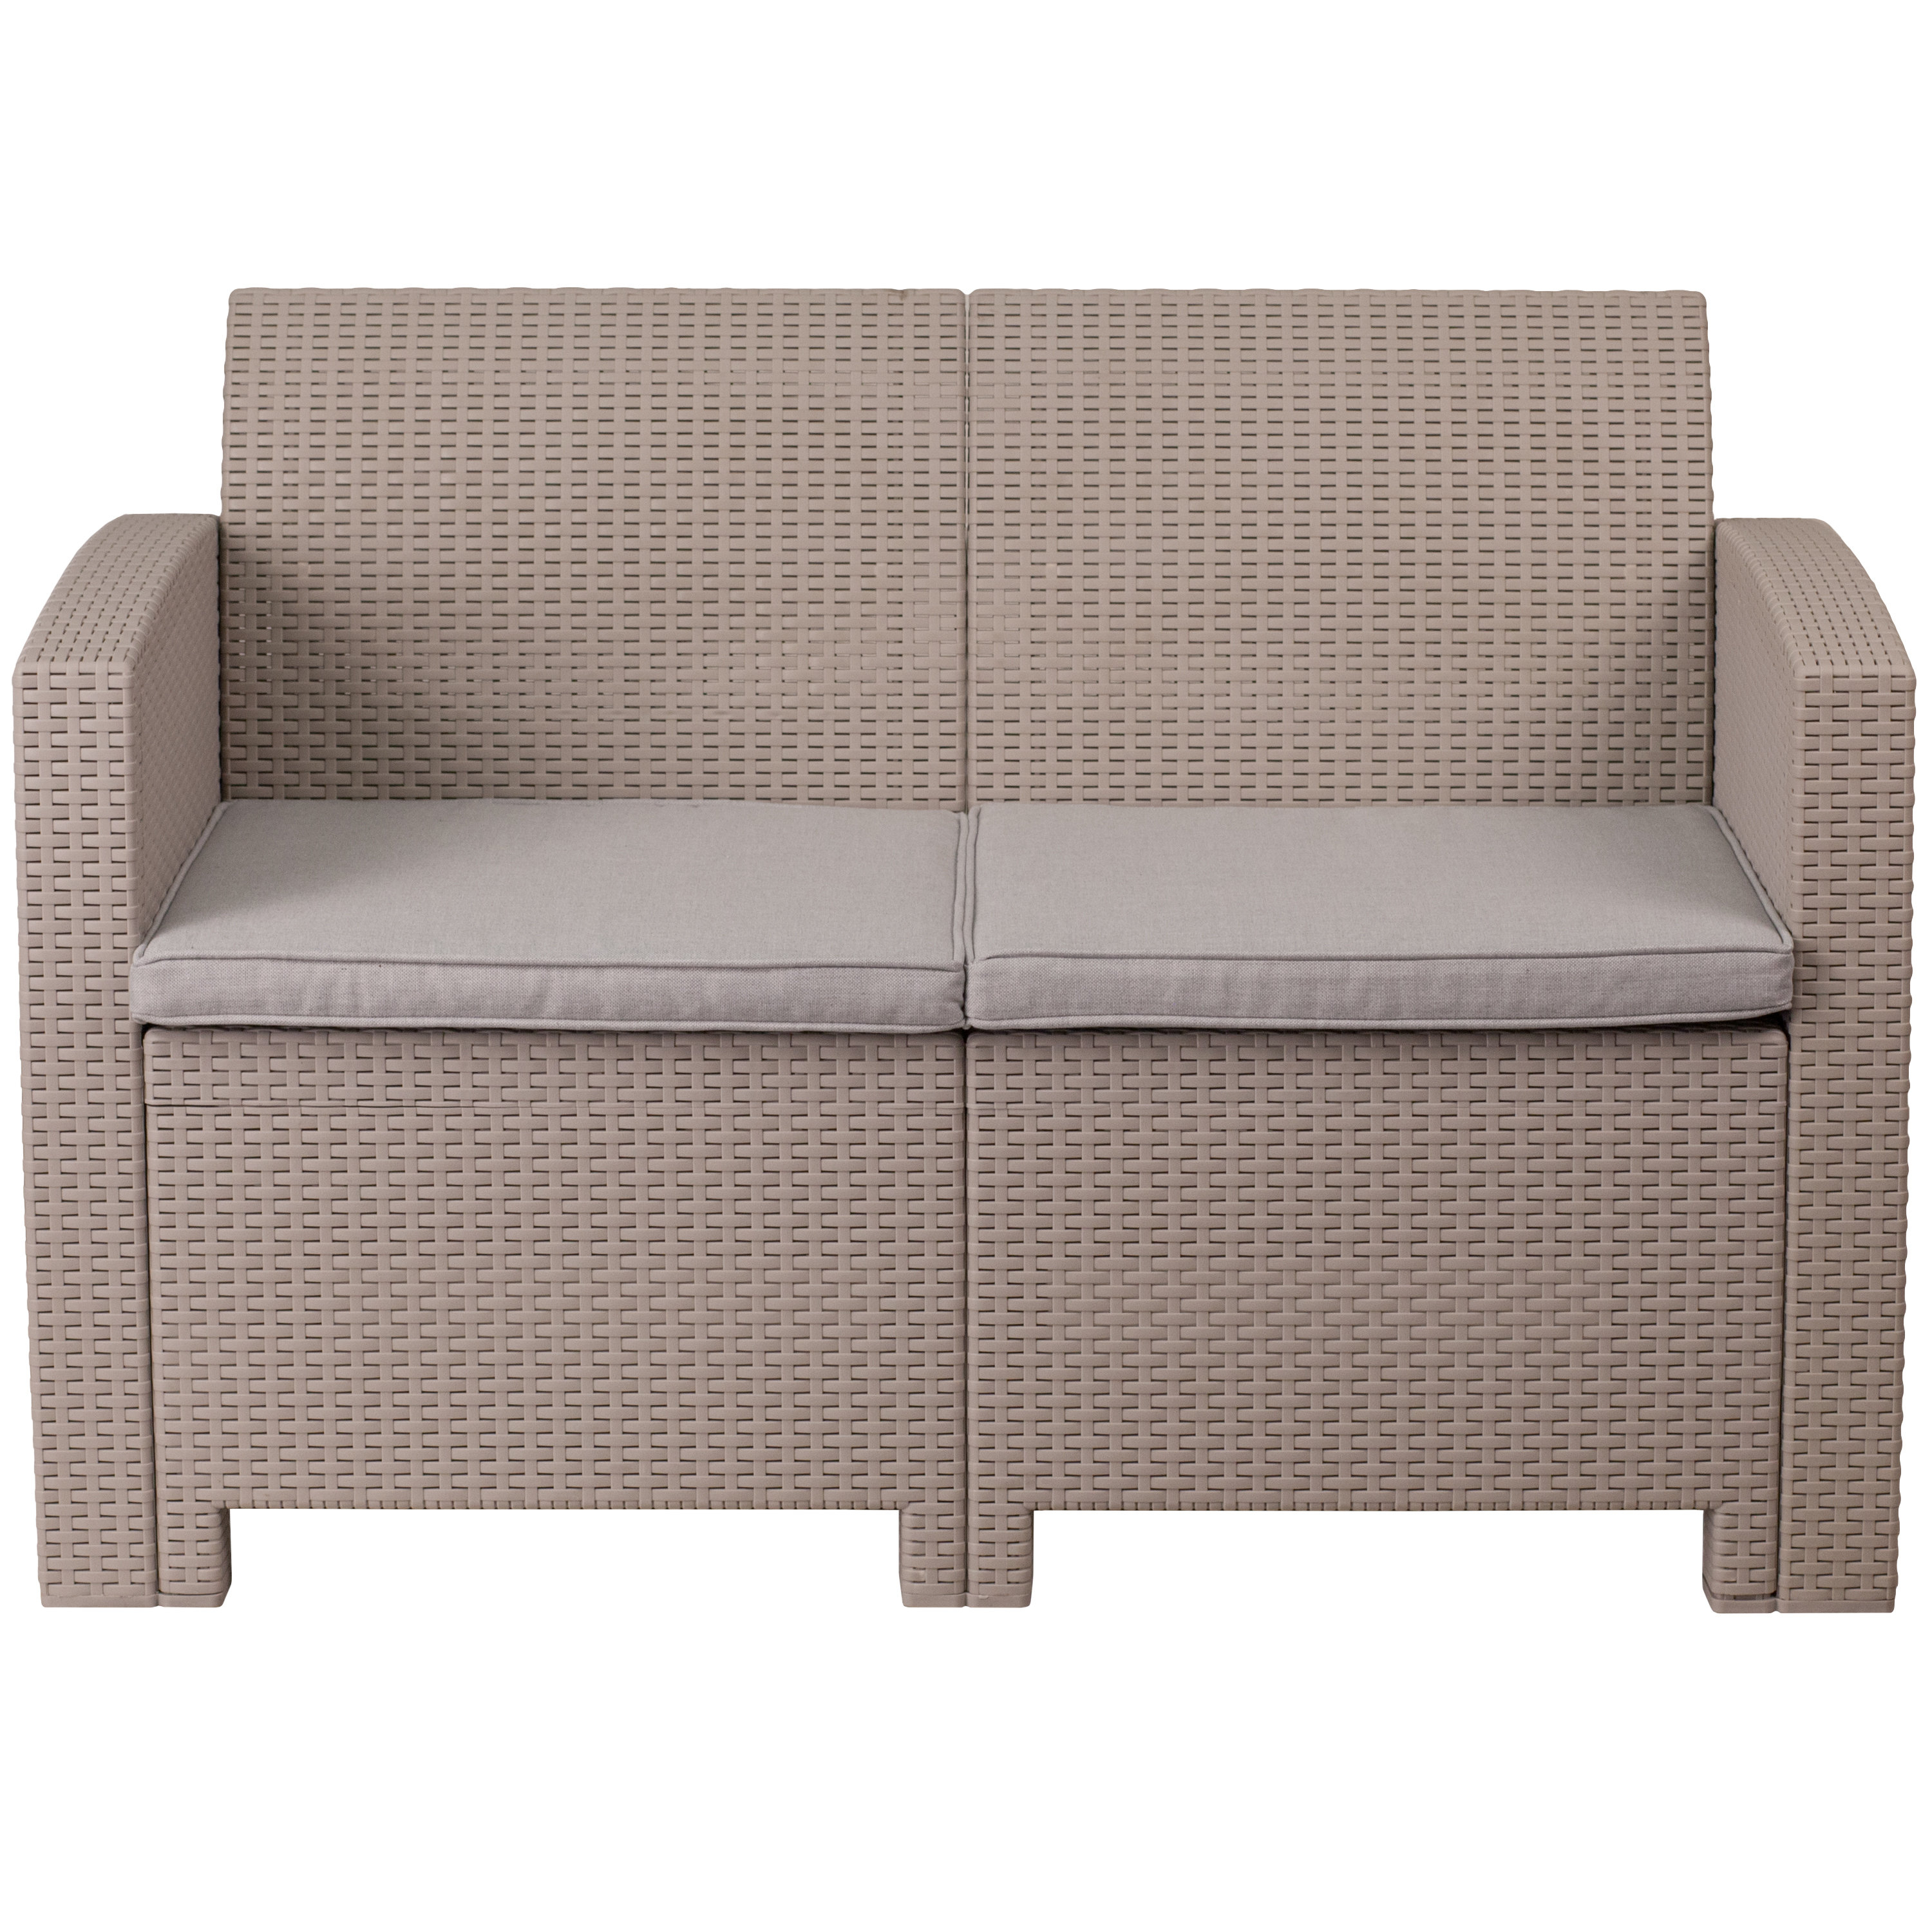 Breakwater Bay Stockwell Loveseat With Cushions & Reviews Within Newest Clifford Loveseats With Cushion (View 5 of 20)